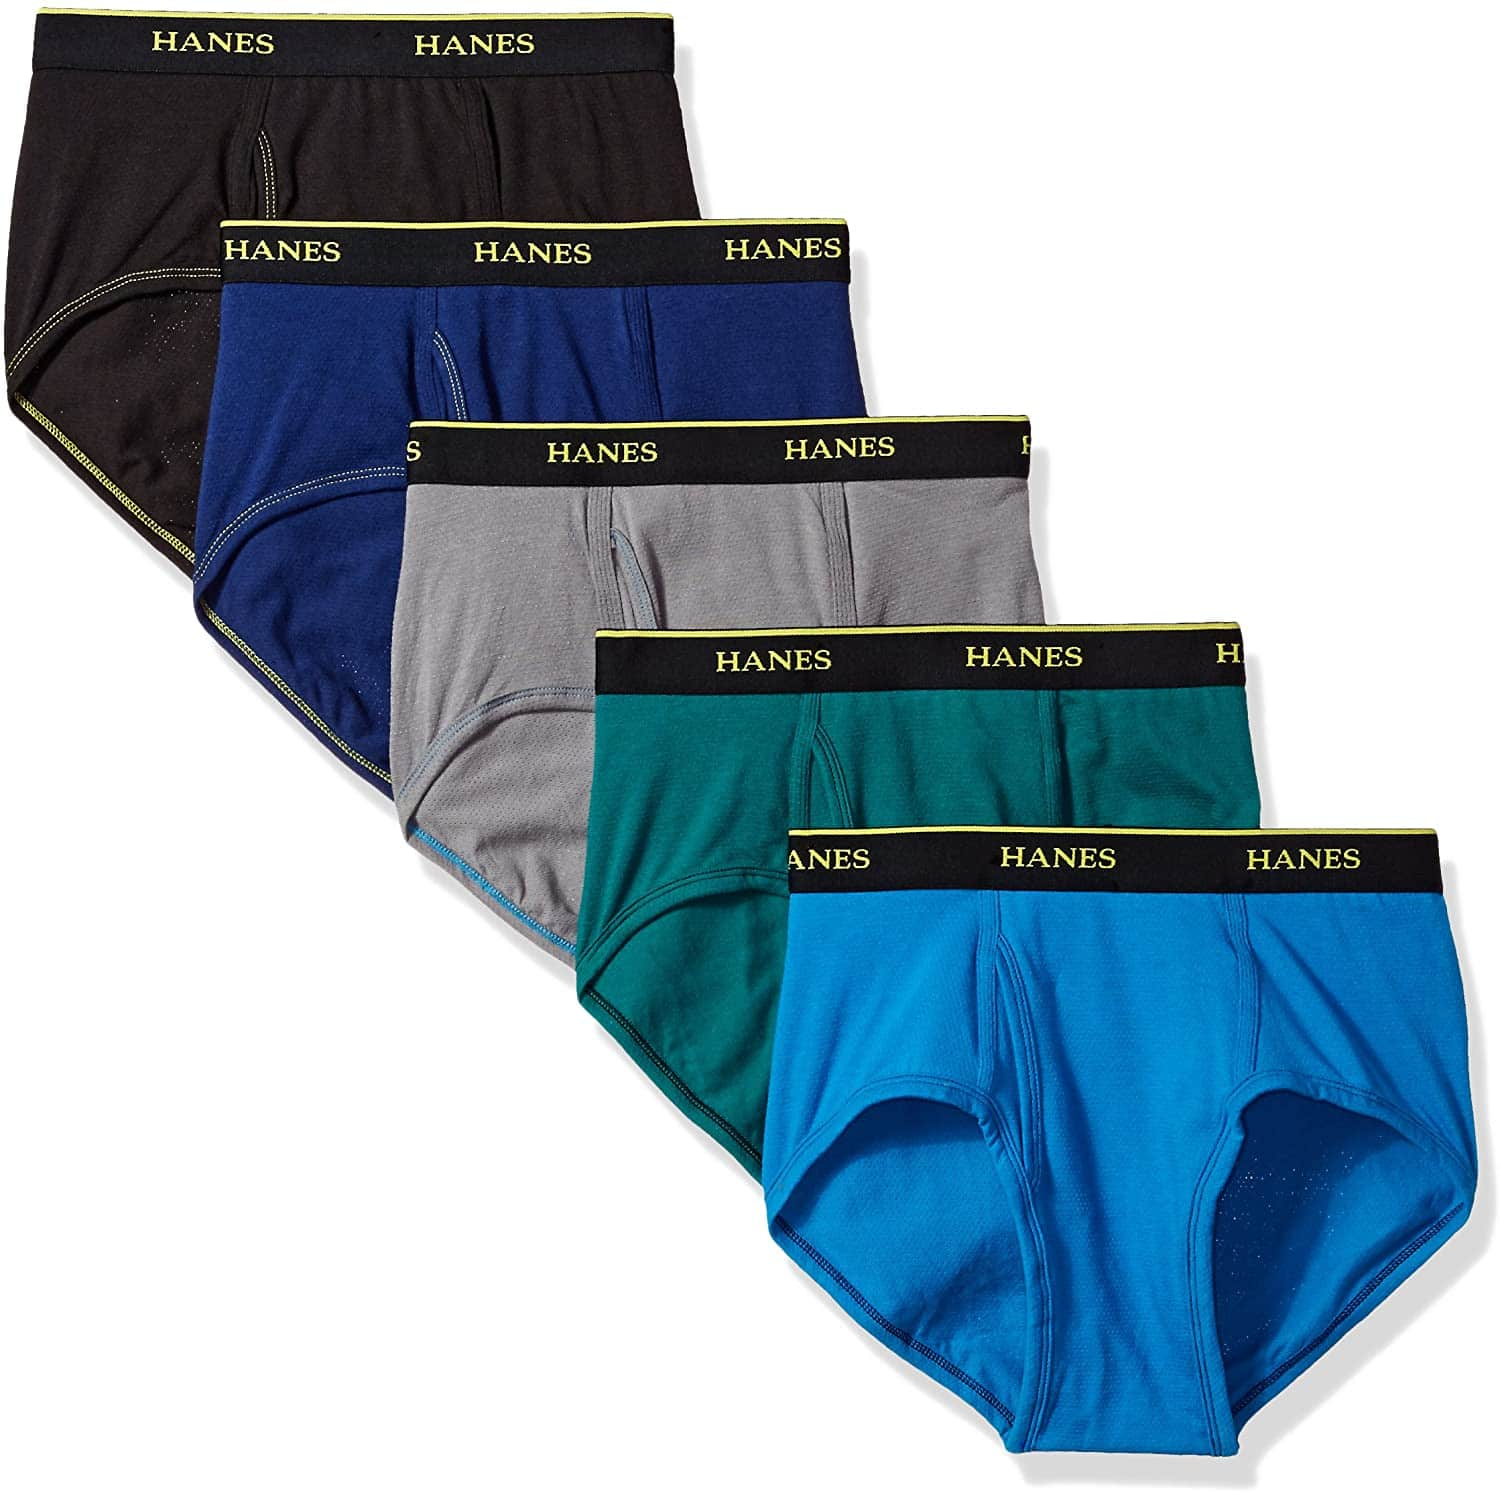 5-Pack Hanes Men's Cool Comfort Lightweight Breathable Mesh Briefs (Large)